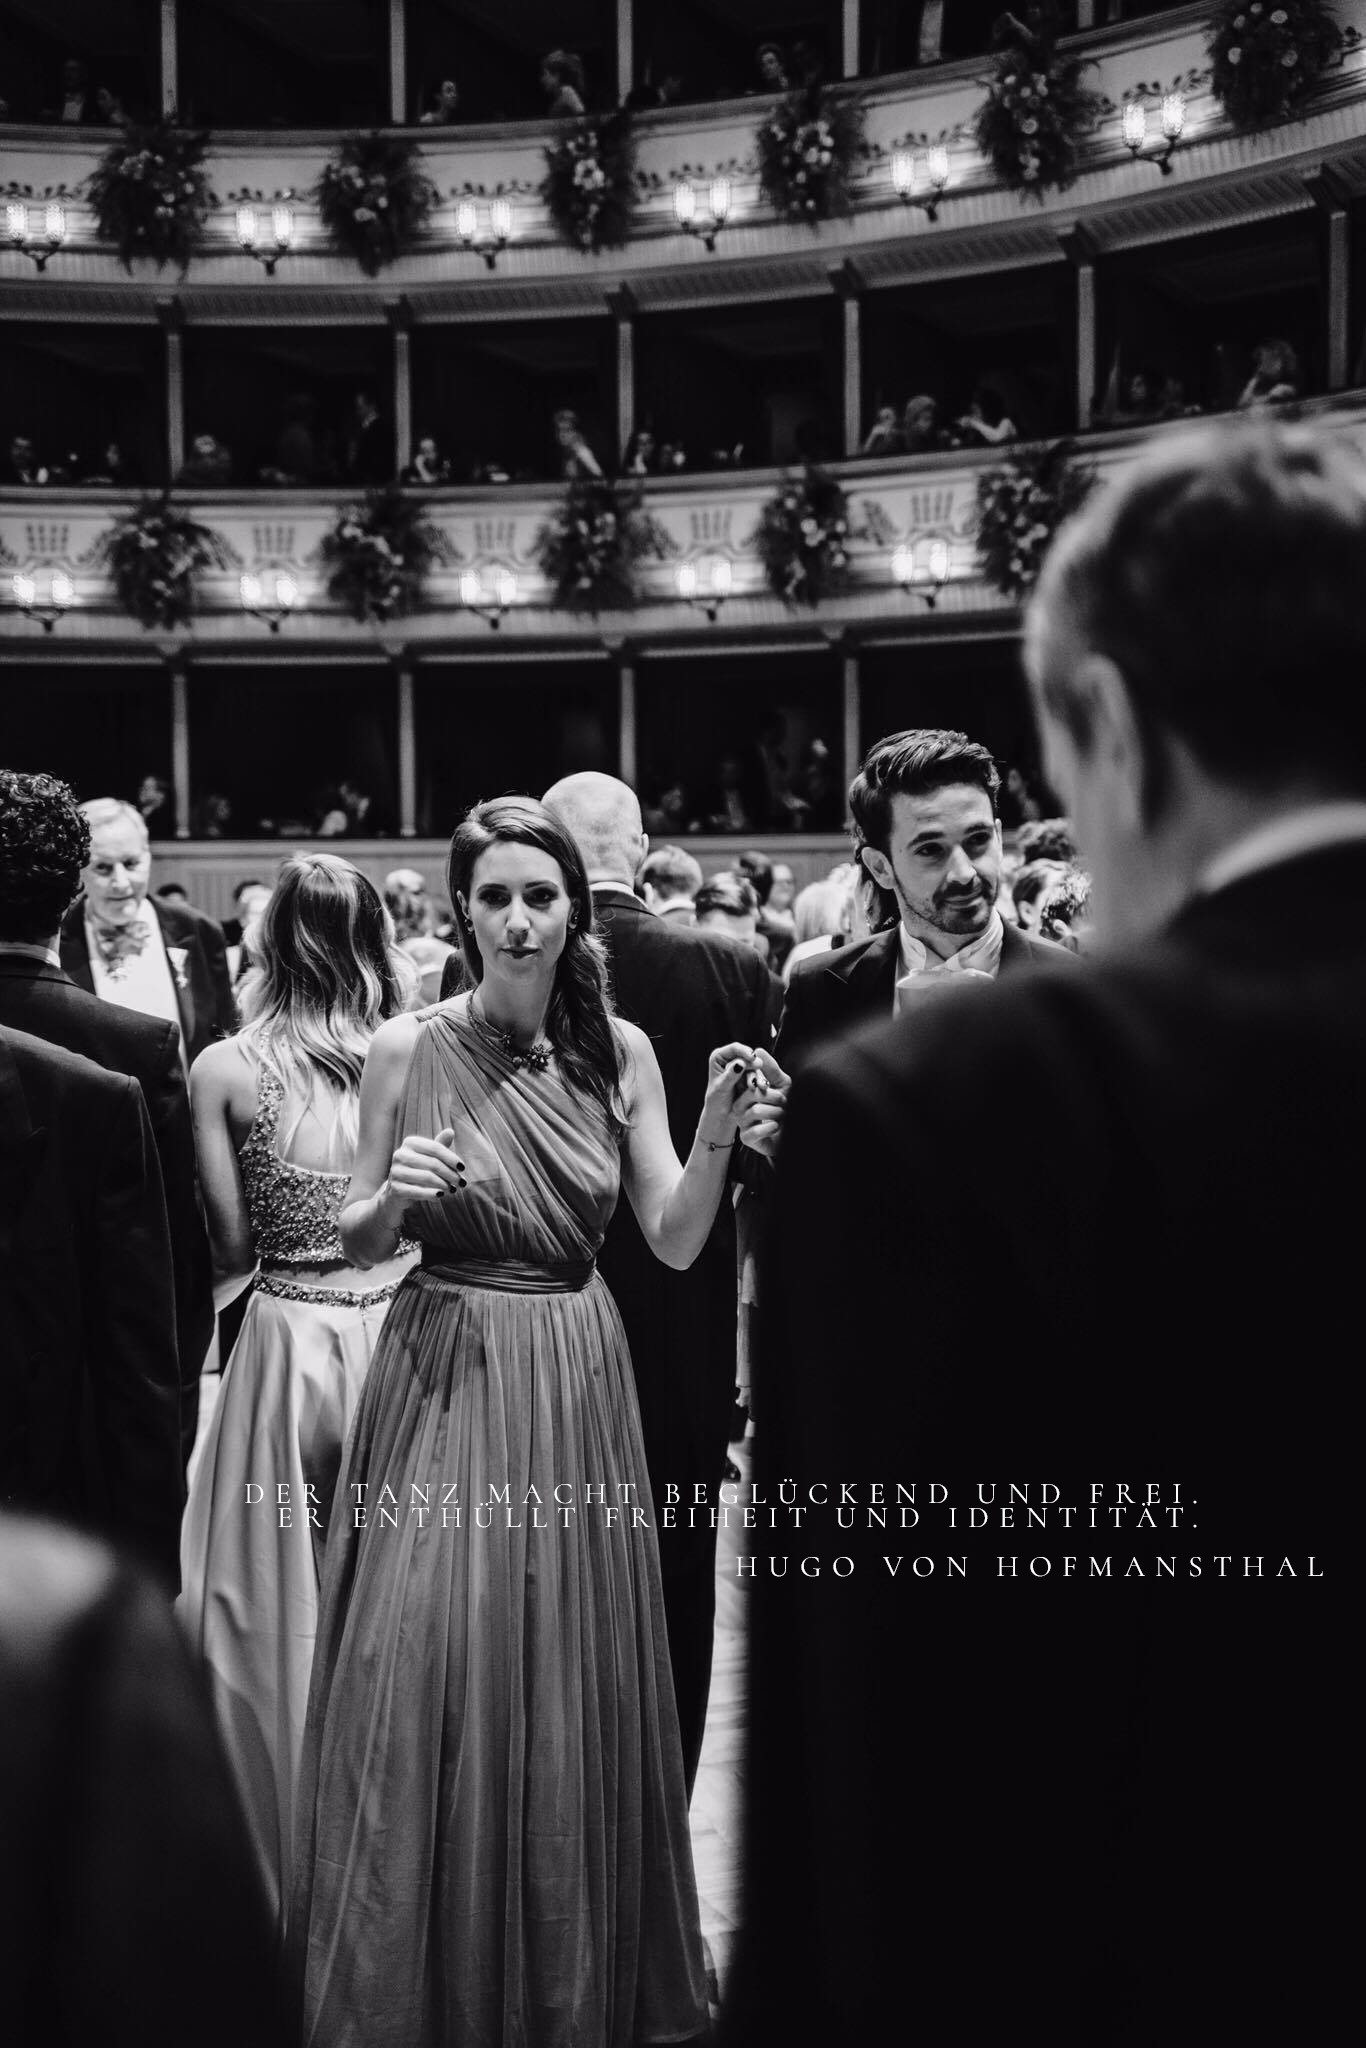 Wiener Opernball 2017, Bilder & Review